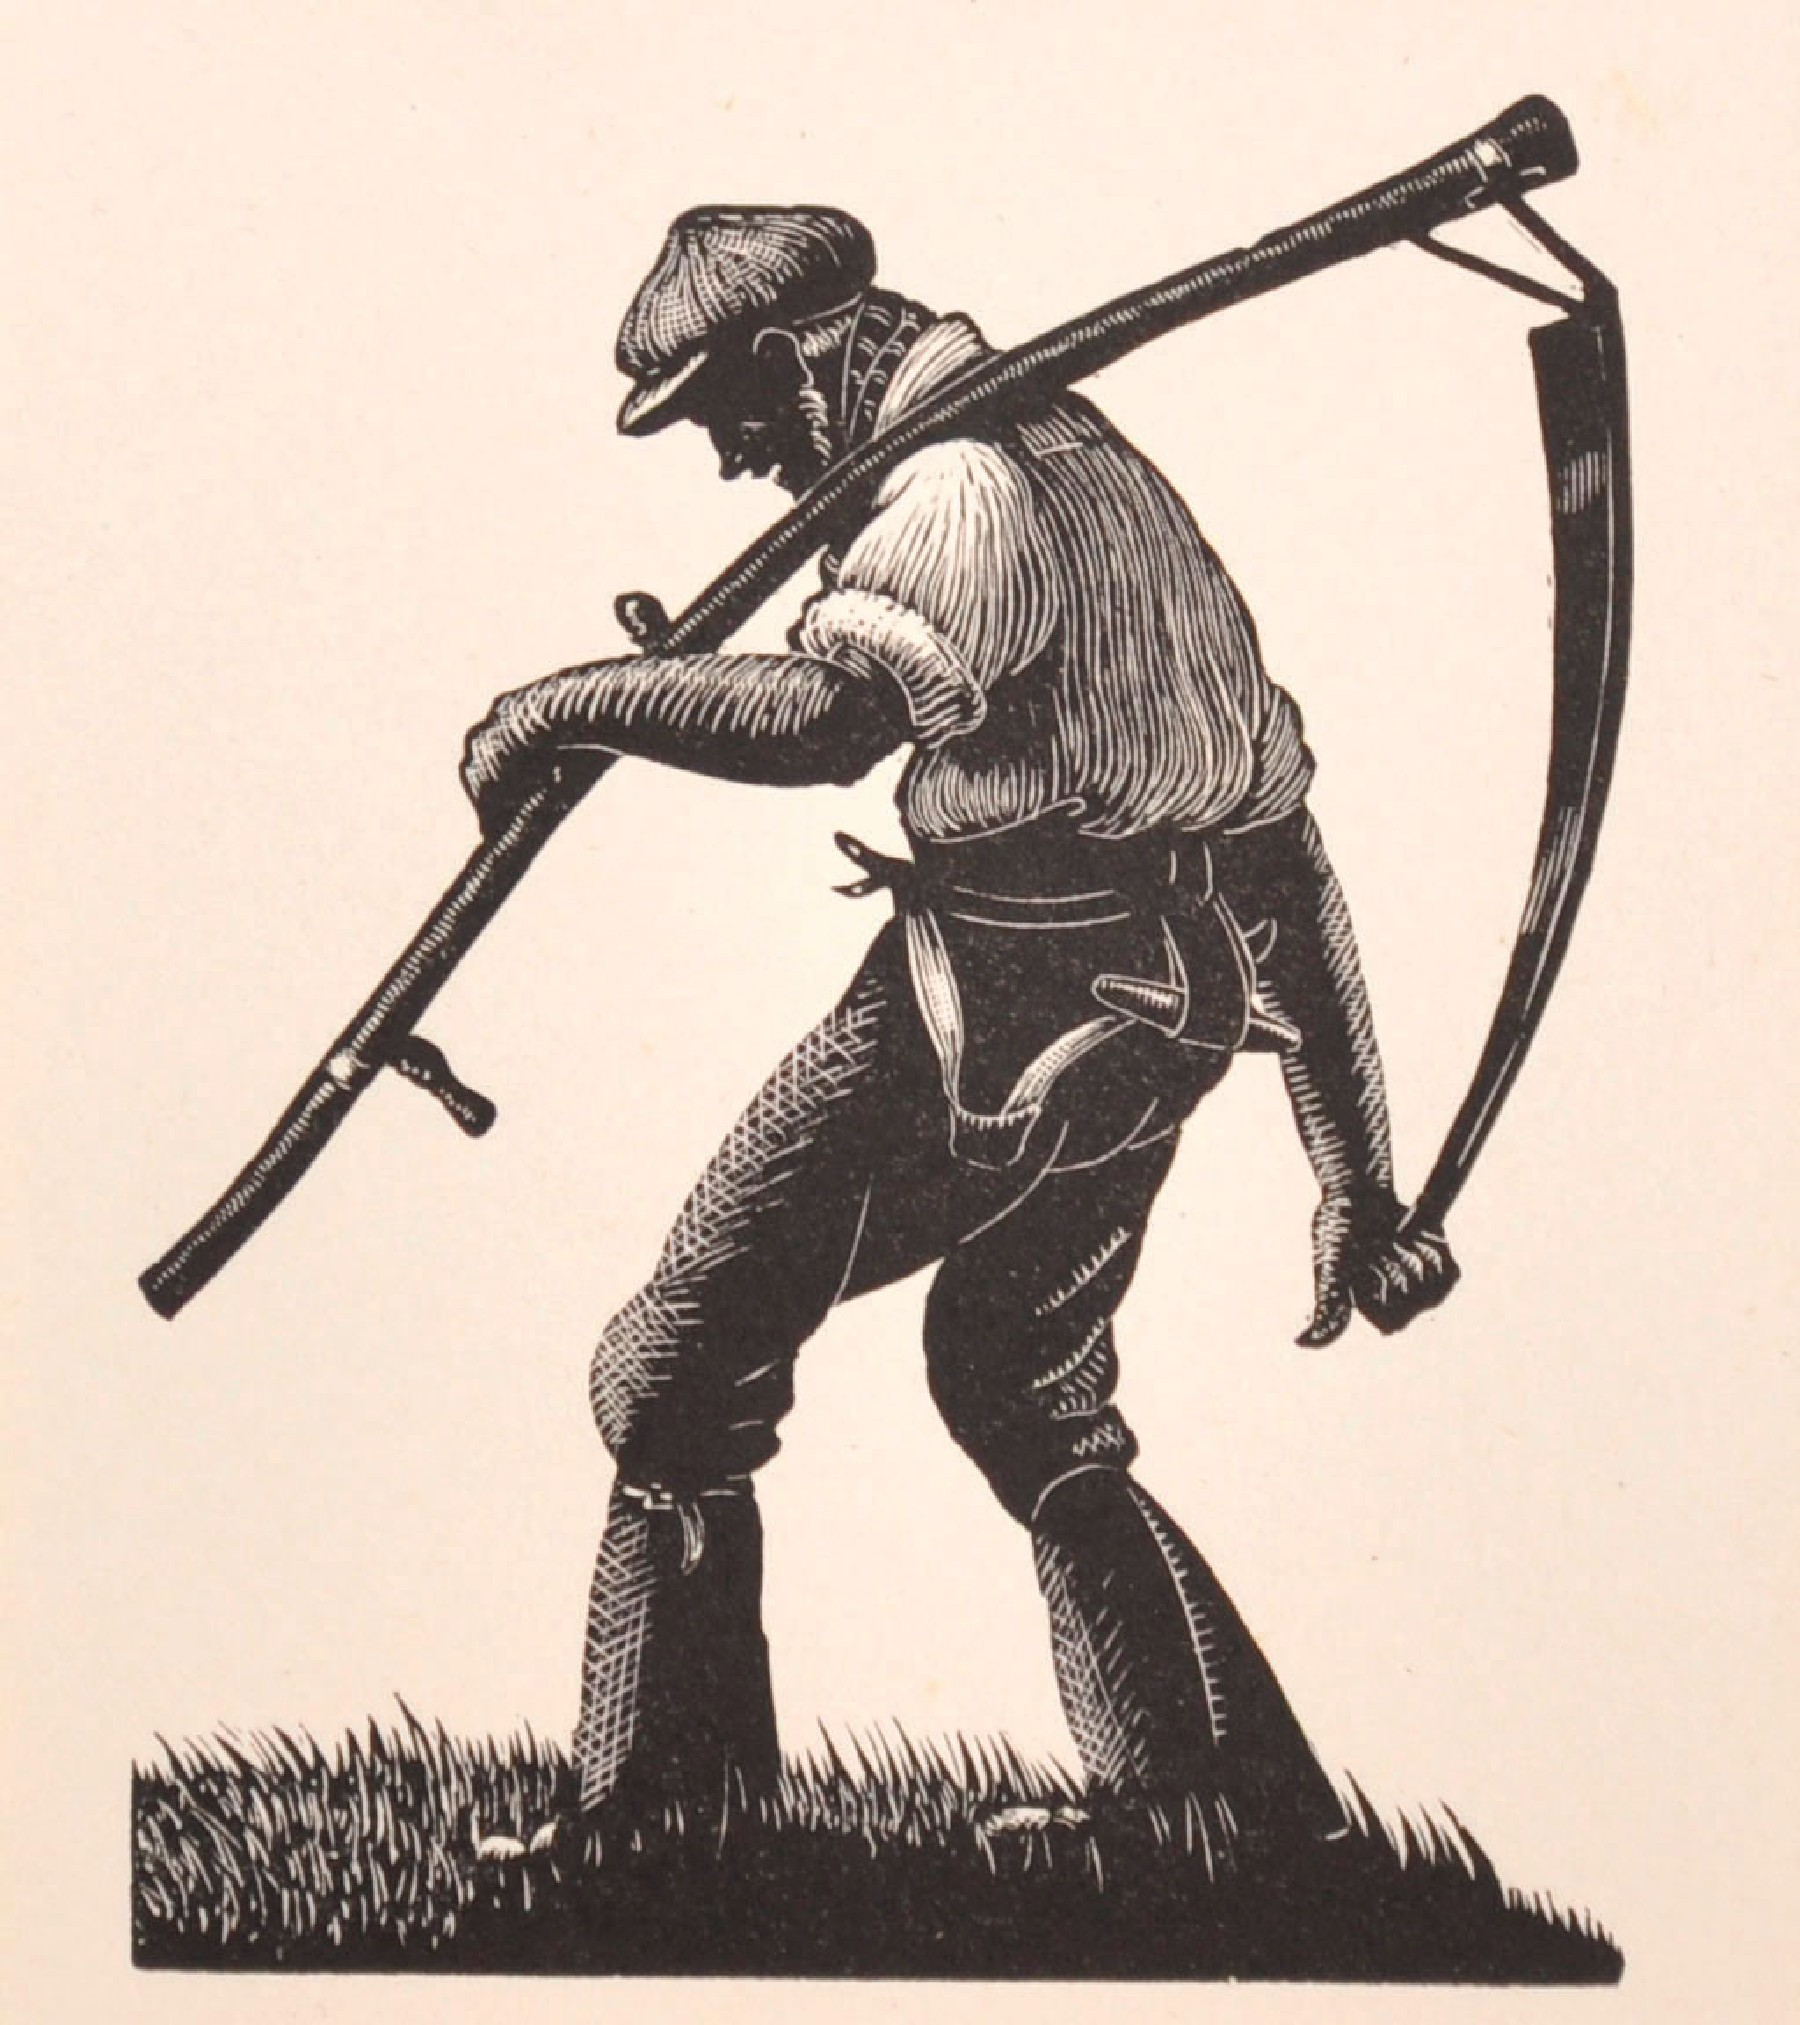 "Clare Leighton (1898-1989) British. 'The Ploughman', Print, Unframed, 4"" x 3.5""."